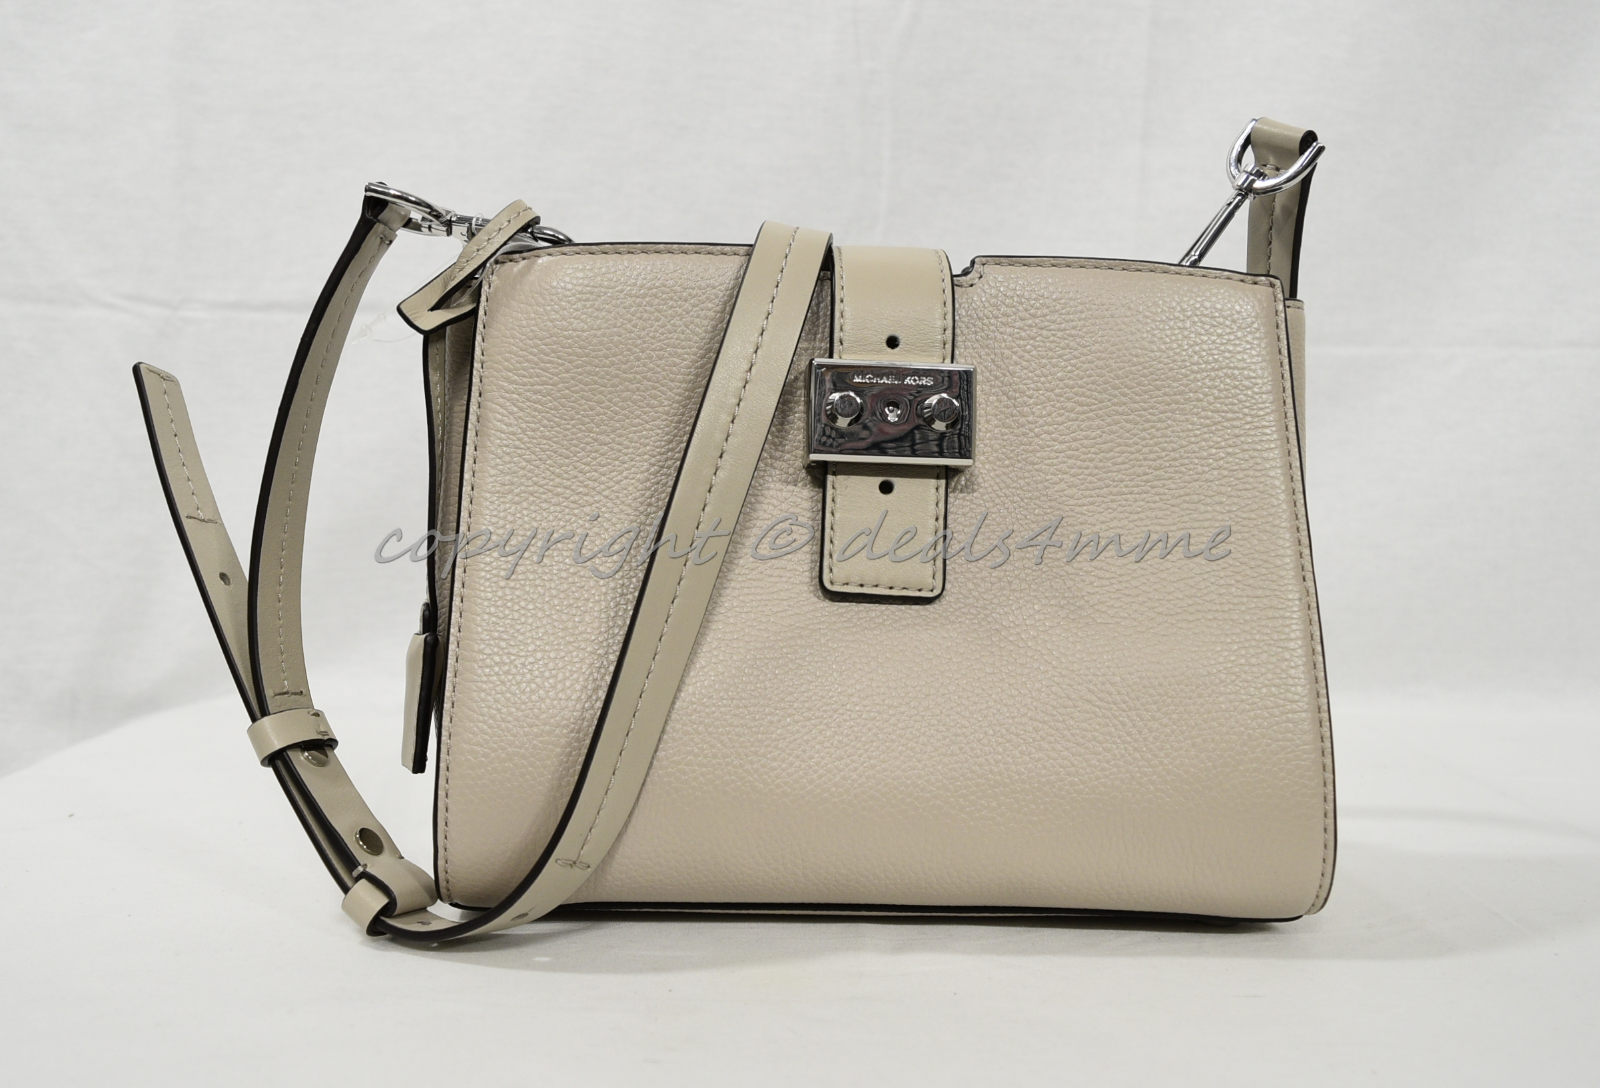 e640b98aef1d Michael Kors Bond Medium Leather Messenger Bag 30s7sb6m2l for sale ...